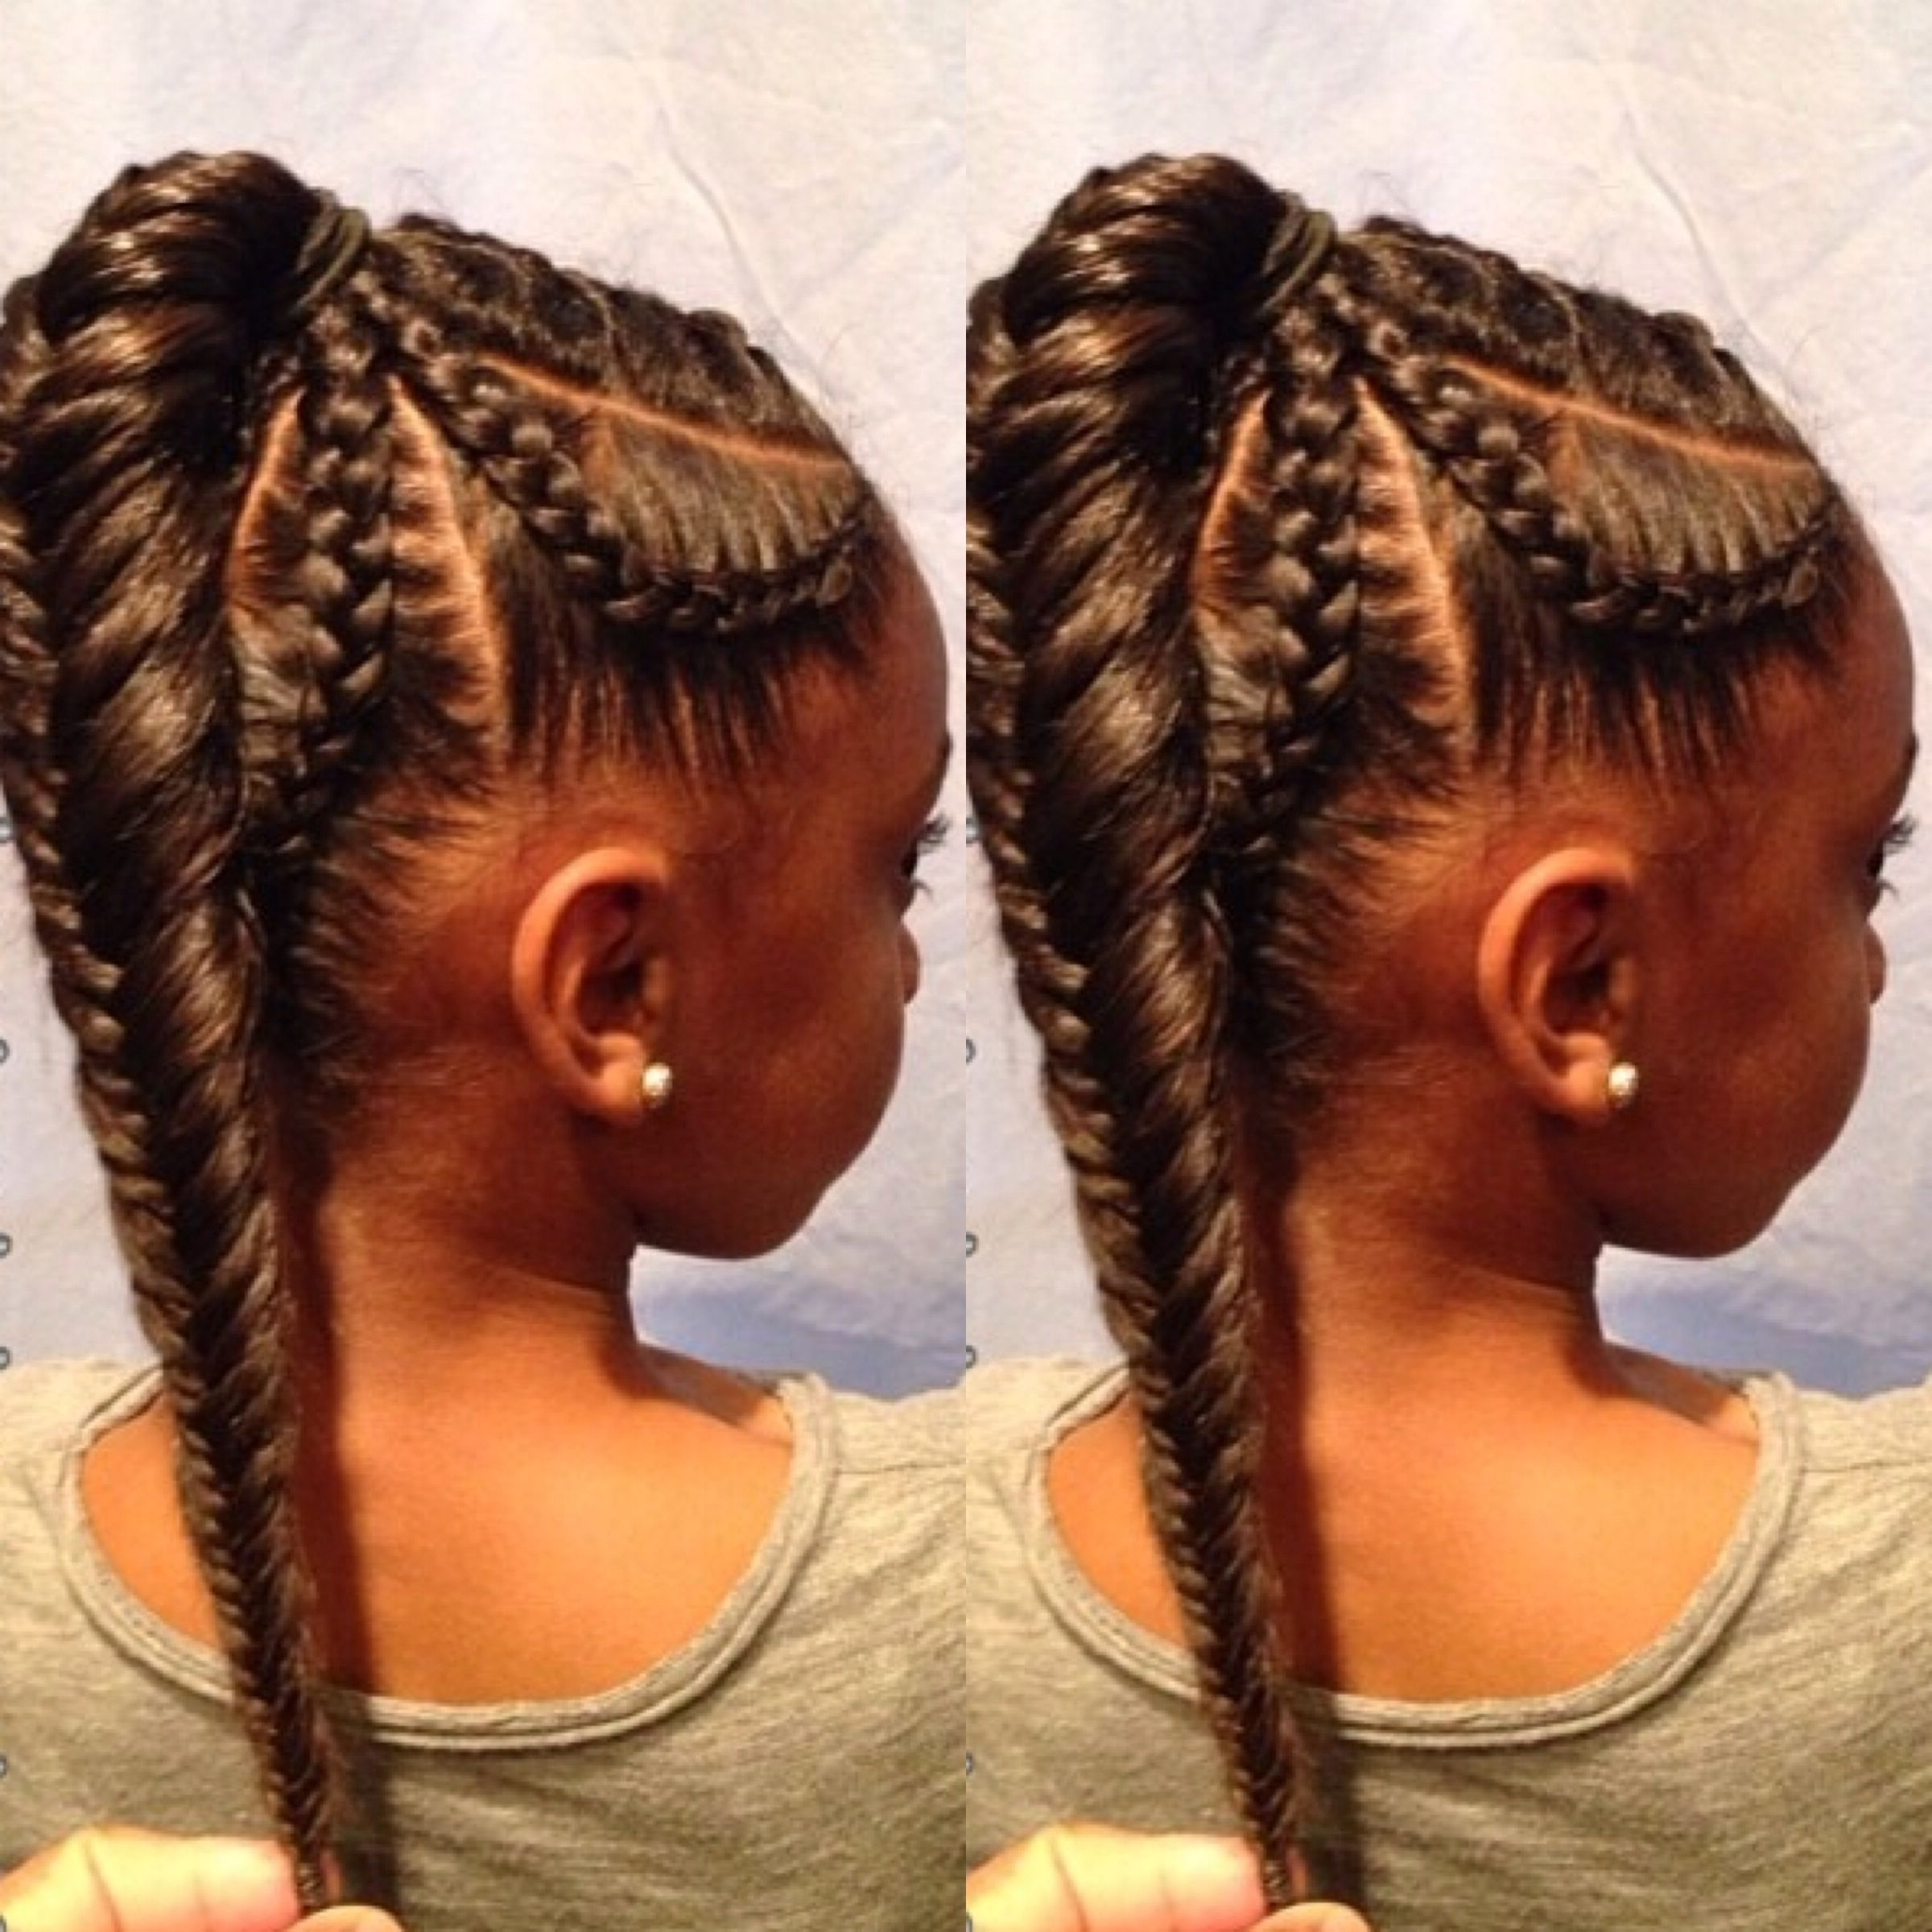 Latest Intricate And Adorable French Braid Ponytail Hairstyles For 70 Best Black Braided Hairstyles That Turn Heads (View 10 of 20)